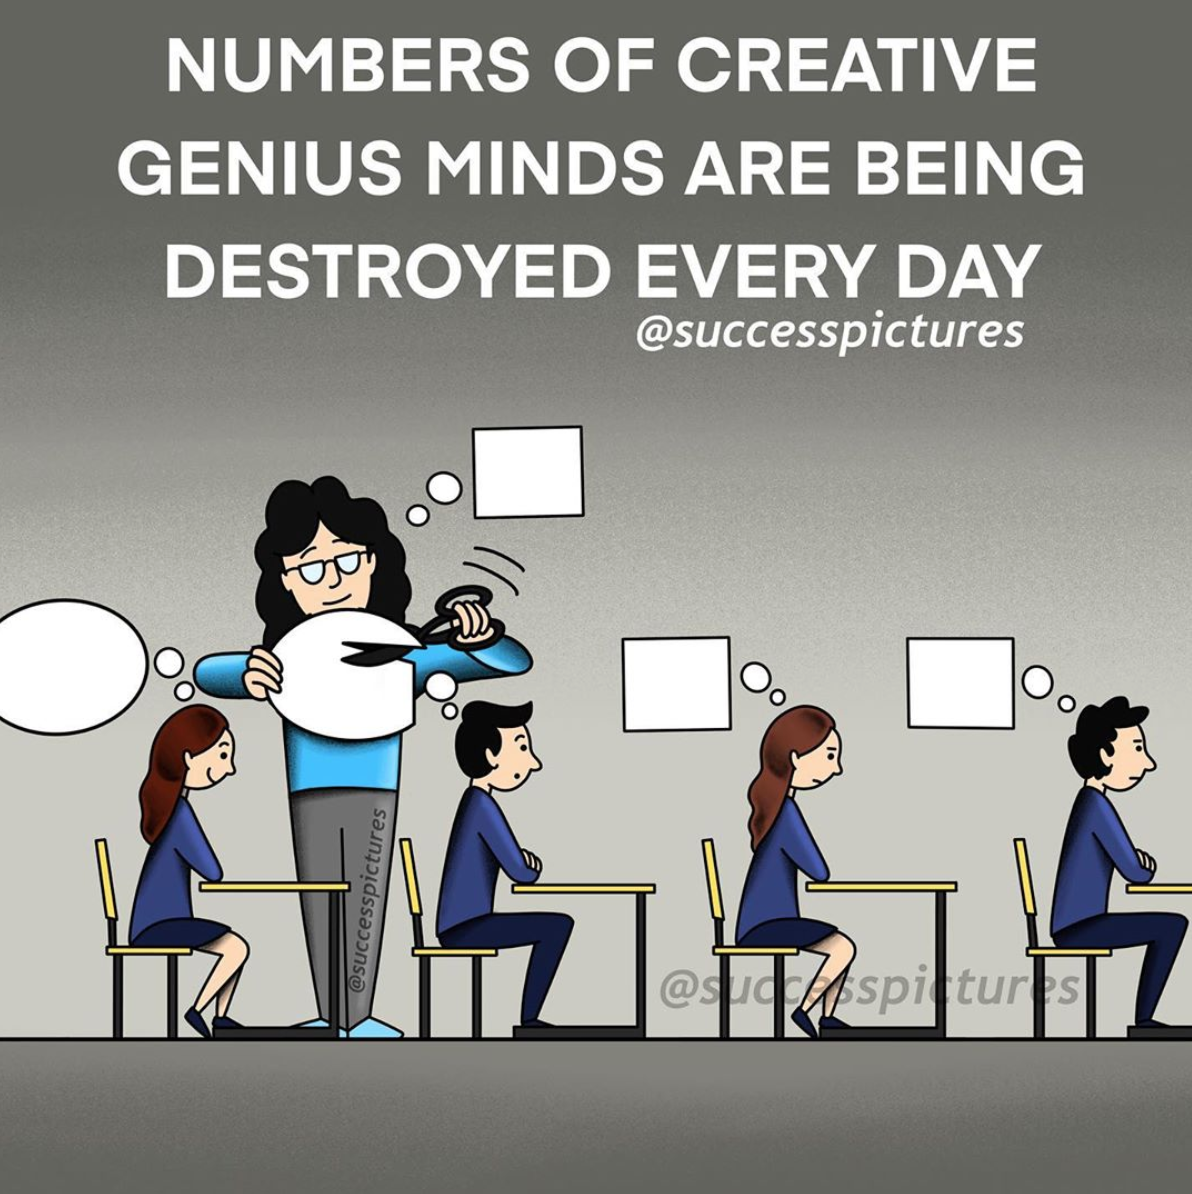 [Image] Don't let the system break the creative genius inside of you